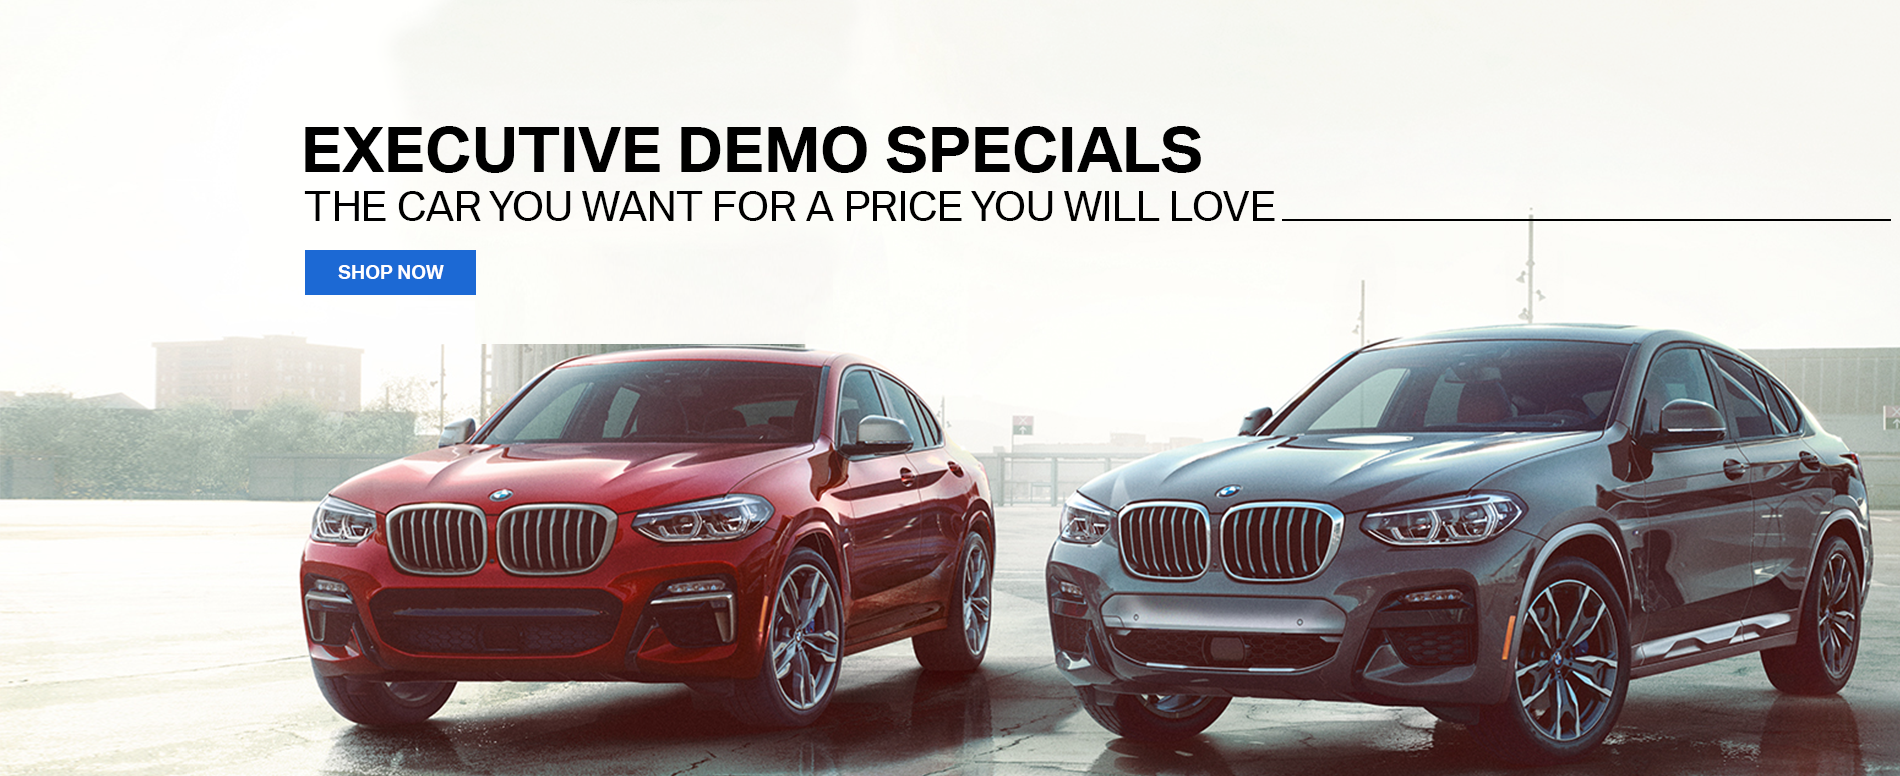 Executive Demo Specials. The Car You Want For A Price You Will Love. Shop Now For More Details